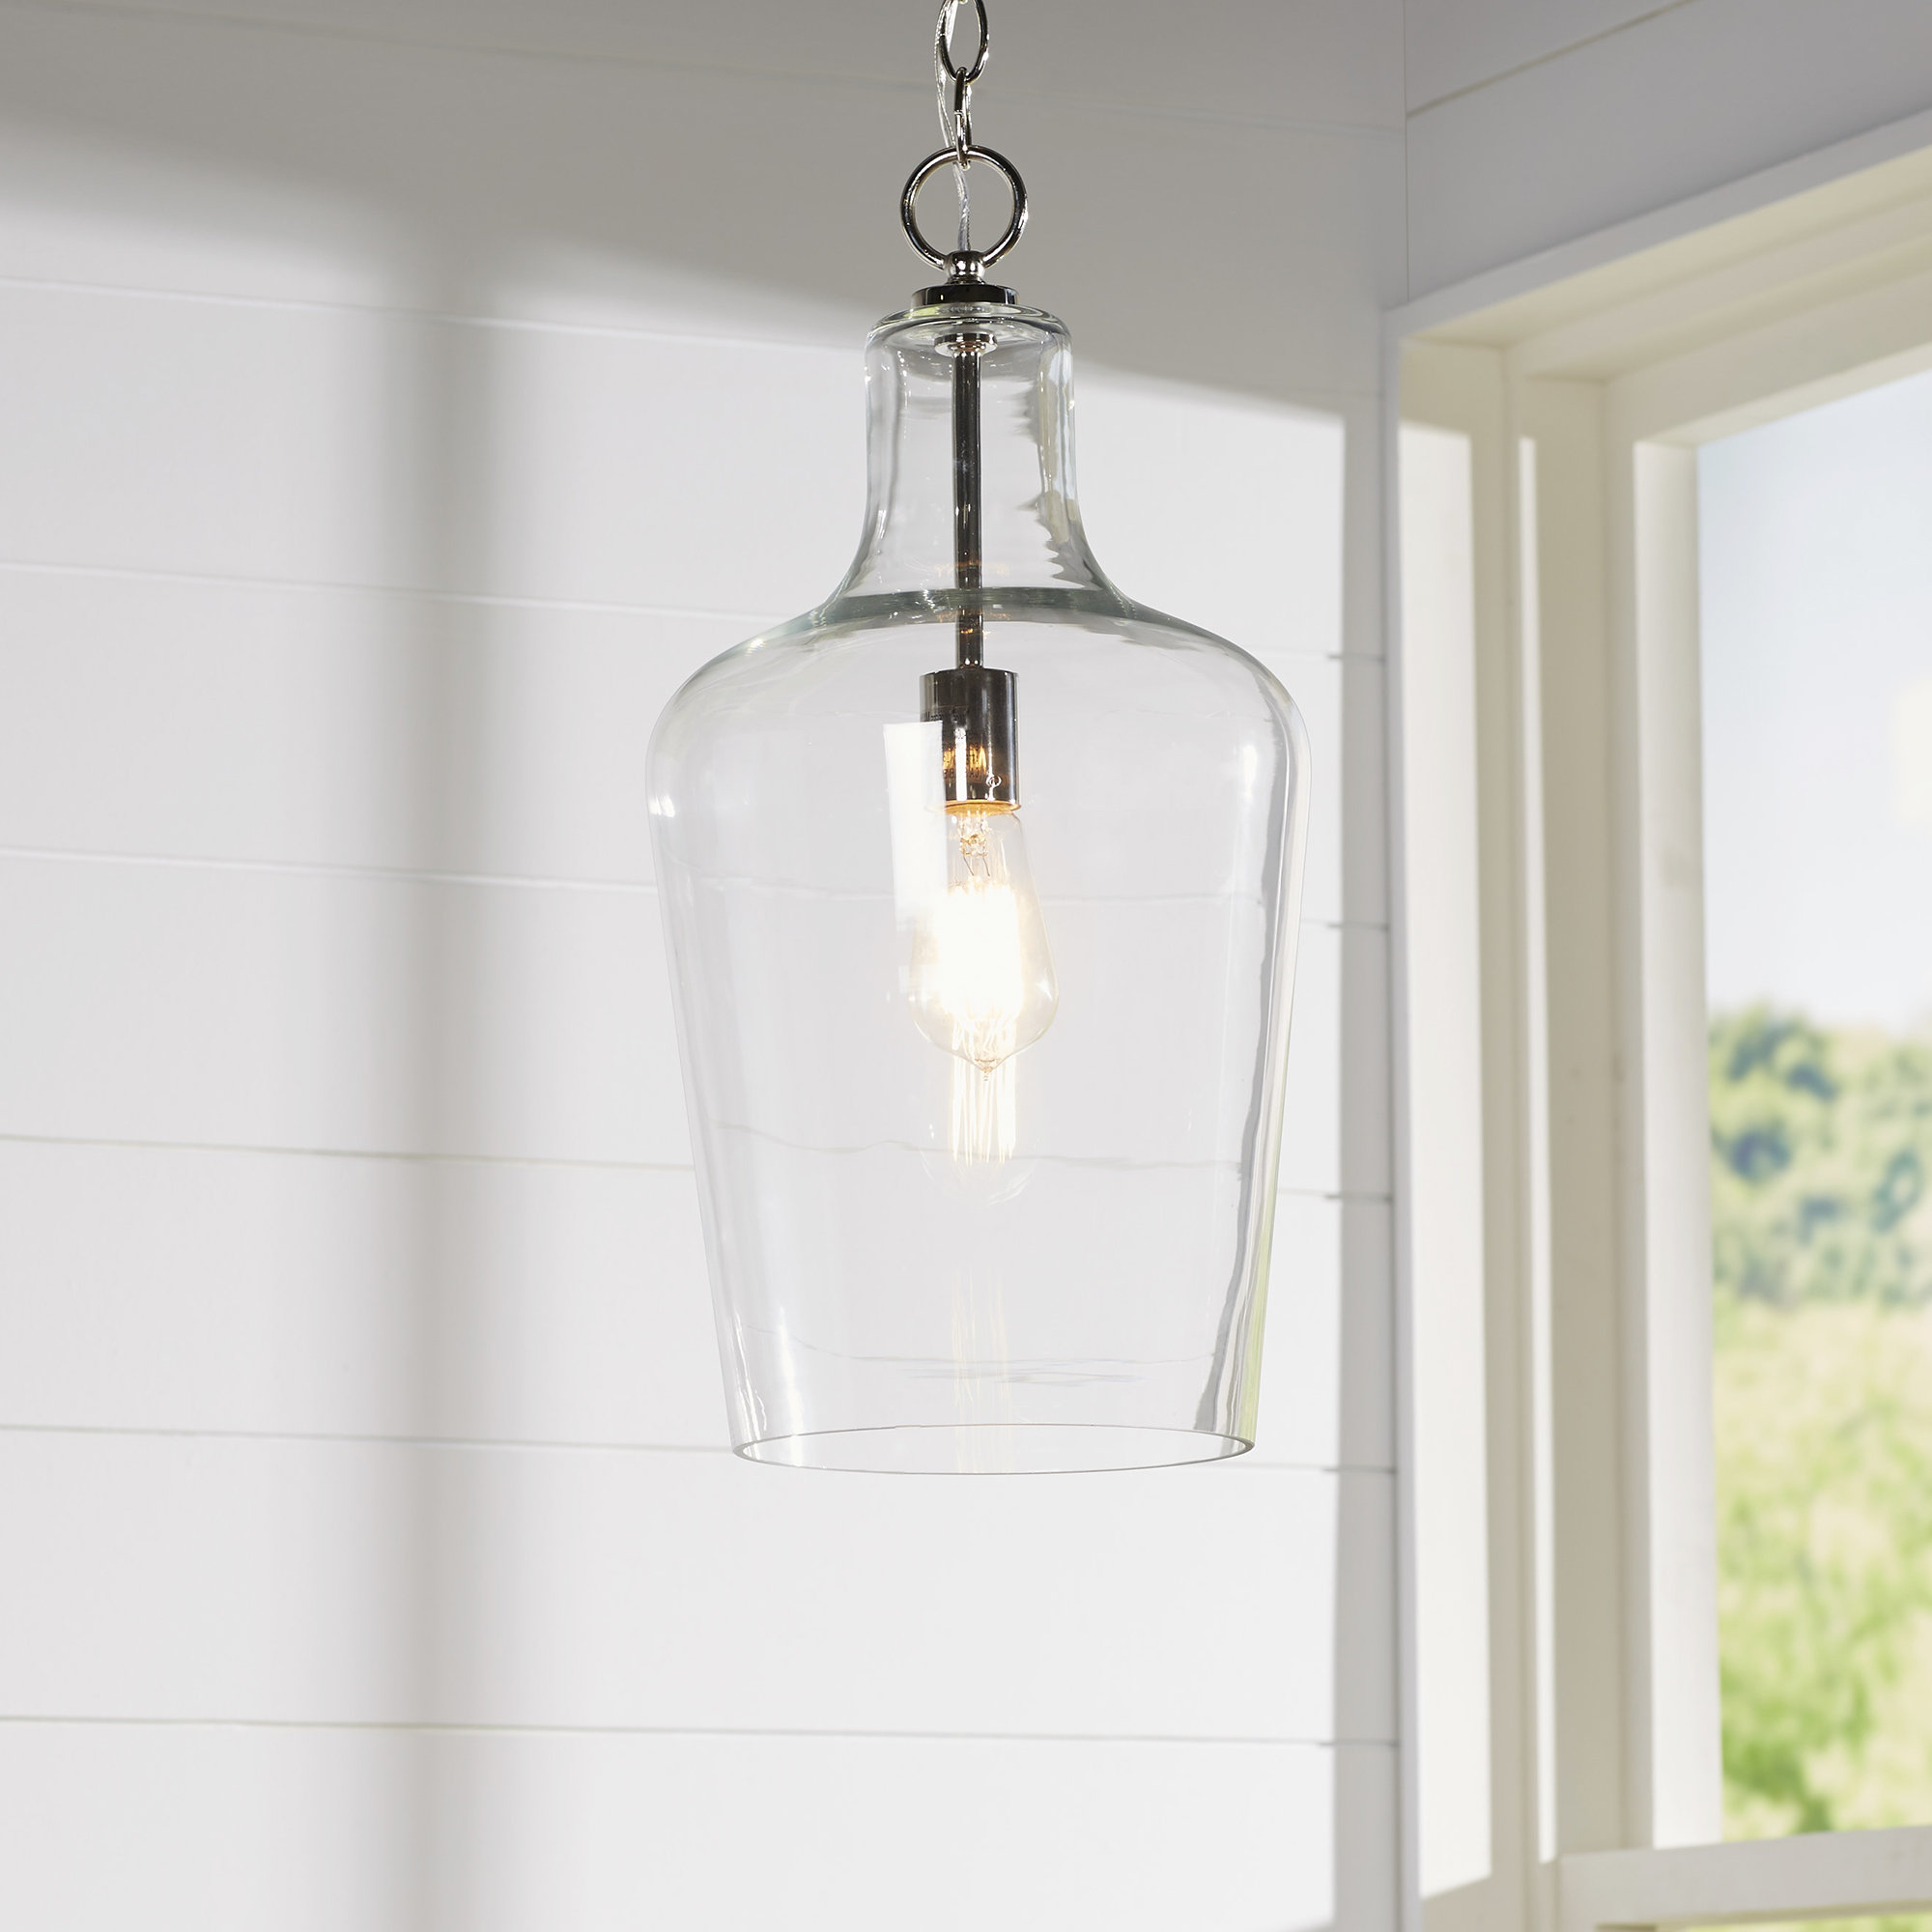 Carey 1 Light Single Bell Pendant With Most Recently Released Clematite 1 Light Single Jar Pendants (View 15 of 20)